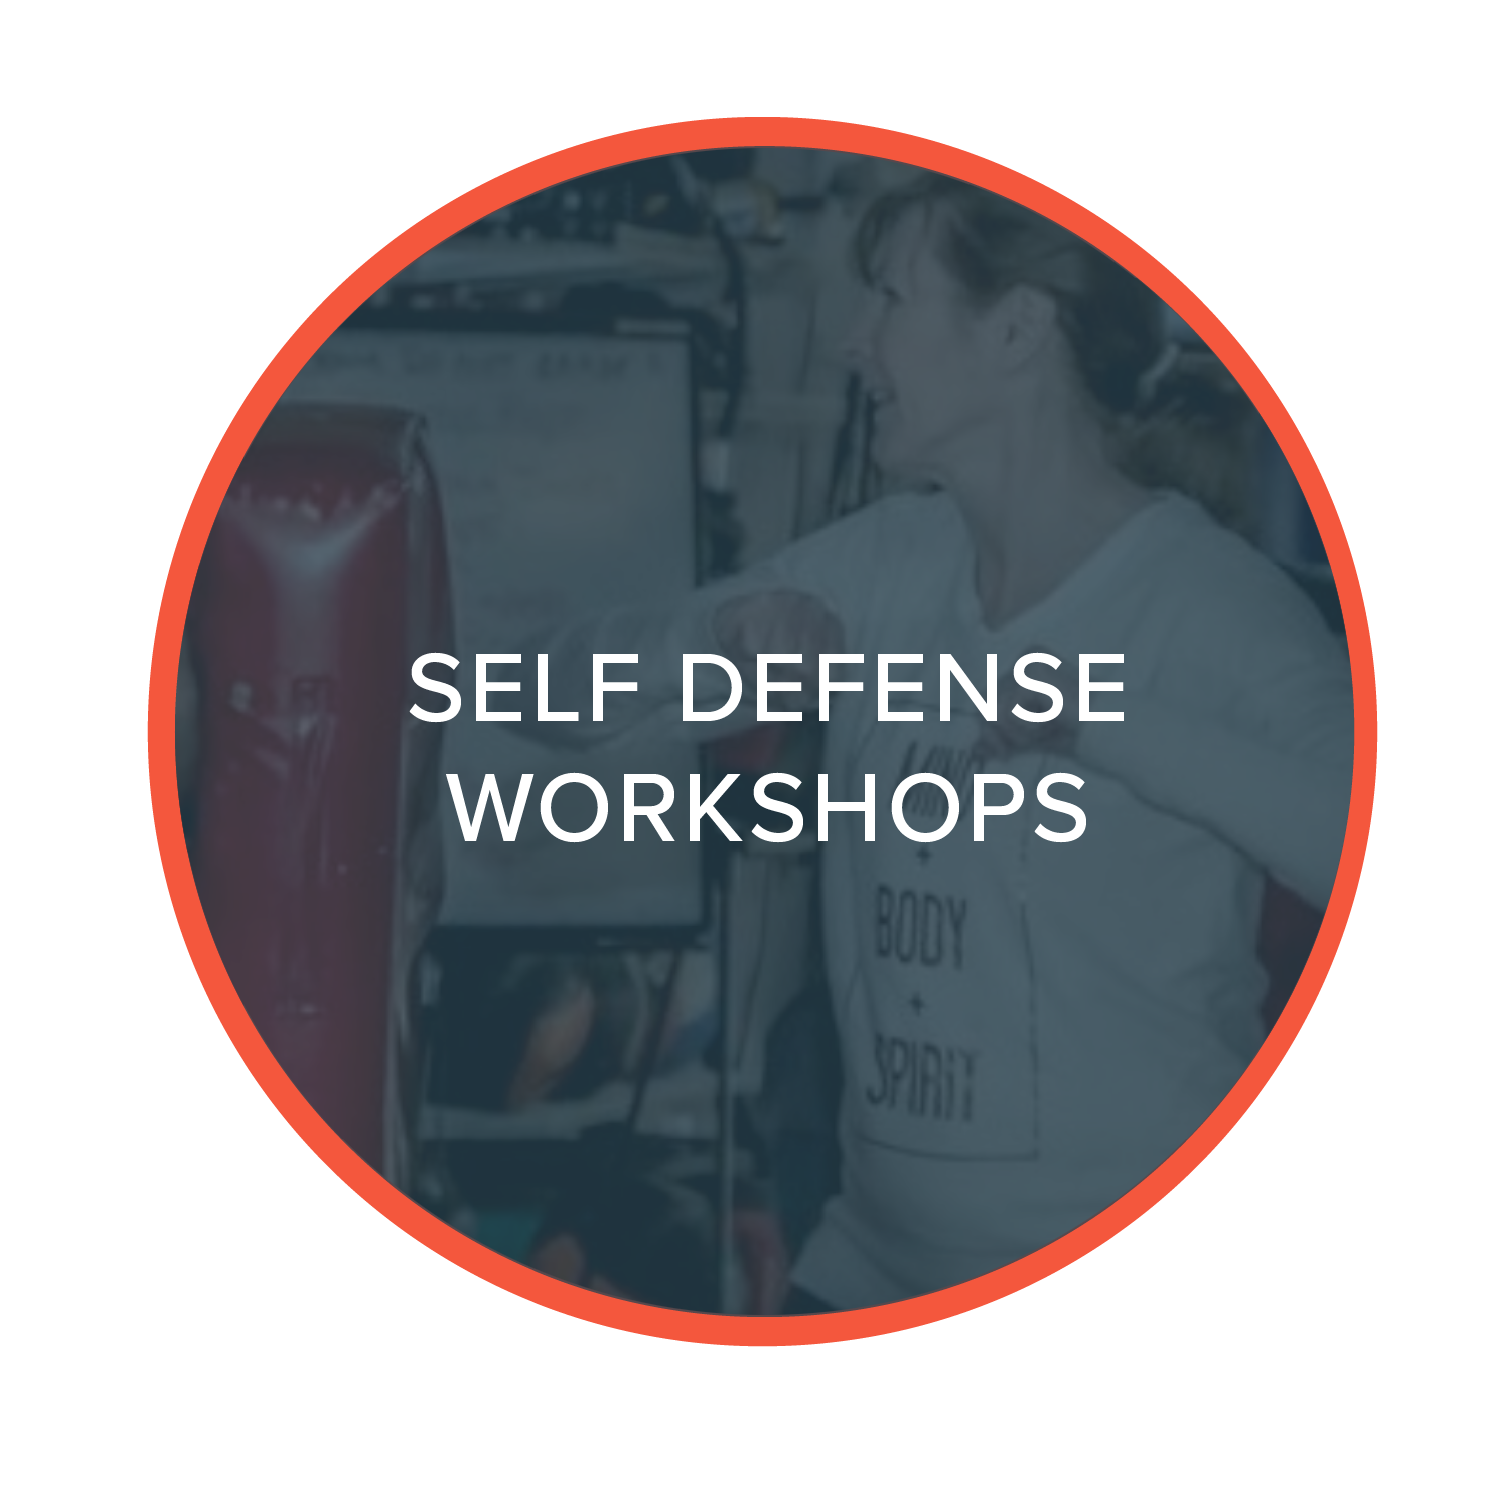 Prepare yourself for unexpected situations and experience the benefits of thinking on your feet. Learn the critical skills of avoidance, basic striking, kicking techniques, and escaping from common grabs and holds. Our self-defense training goes beyond physical movements, strengthening your reaction timing, emotional response, and mental agility. We offer private and public workshops.  Check it out.